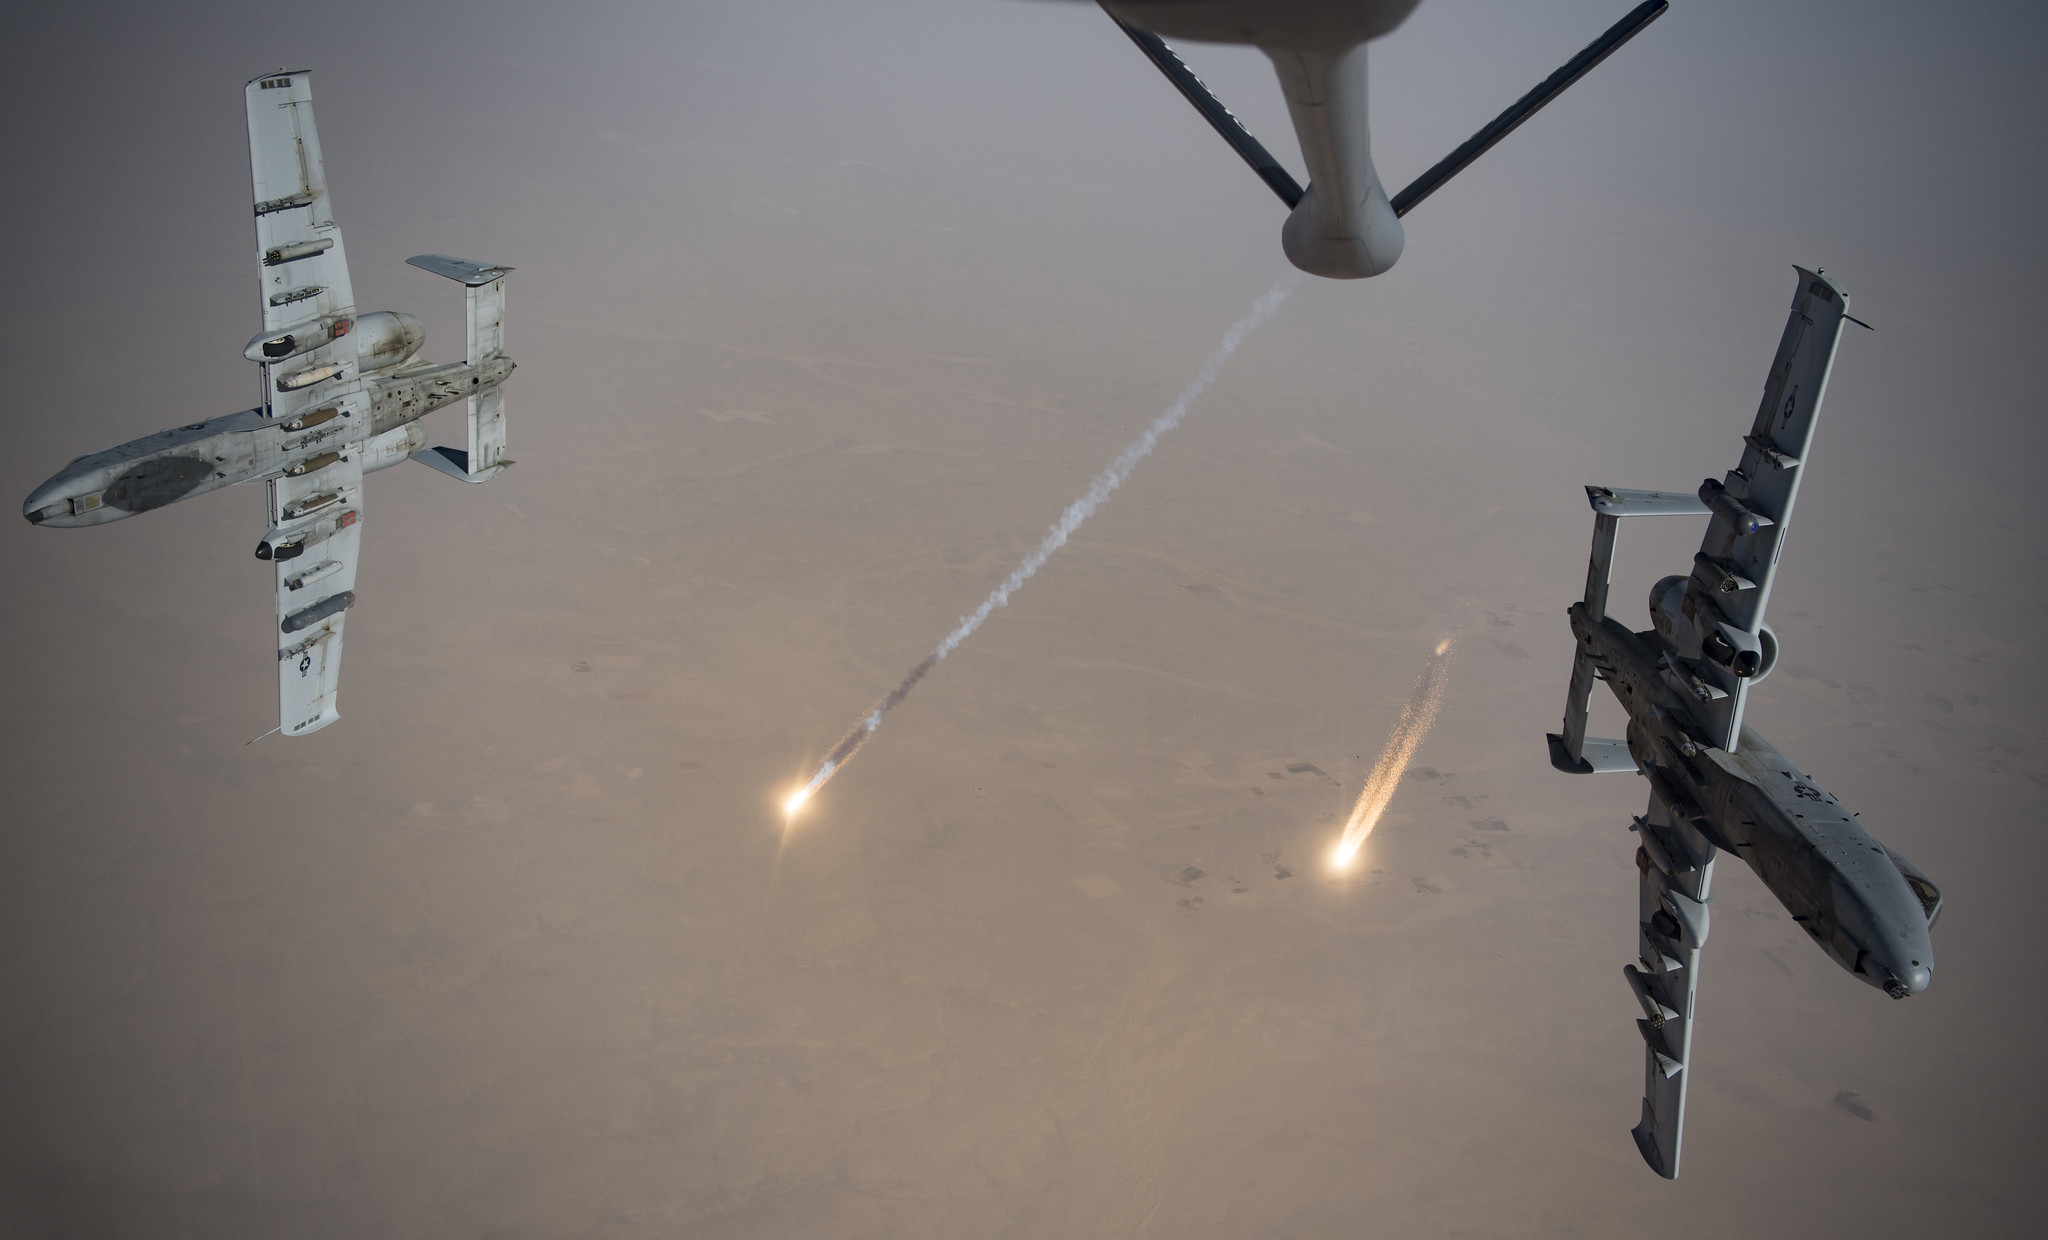 U.S. Air Force A-10 Thunderbolt IIs fire flares while breaking away after aerial refueling from a KC-135 Stratotanker out of Kandahar Airfield, Afghanistan, Aug. 15, 2019. (Staff Sgt. Keifer Bowes/Air Force)